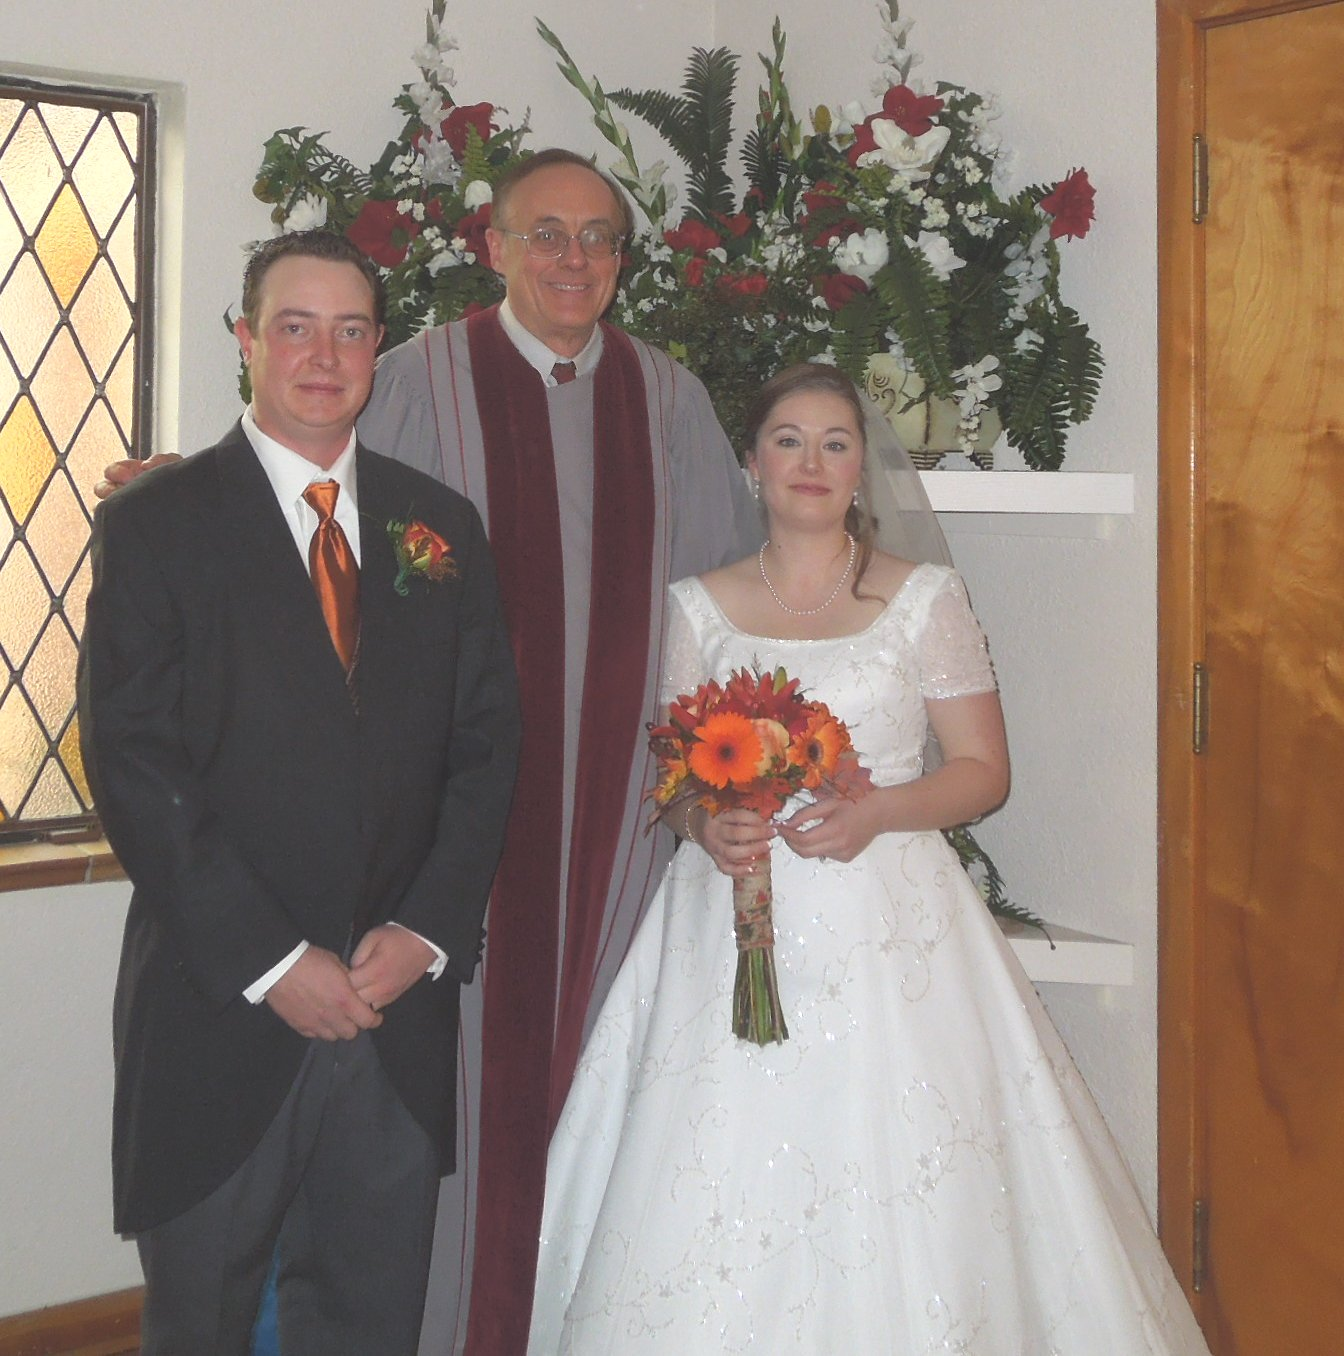 Rev Chris Mohr Renewal of Vows